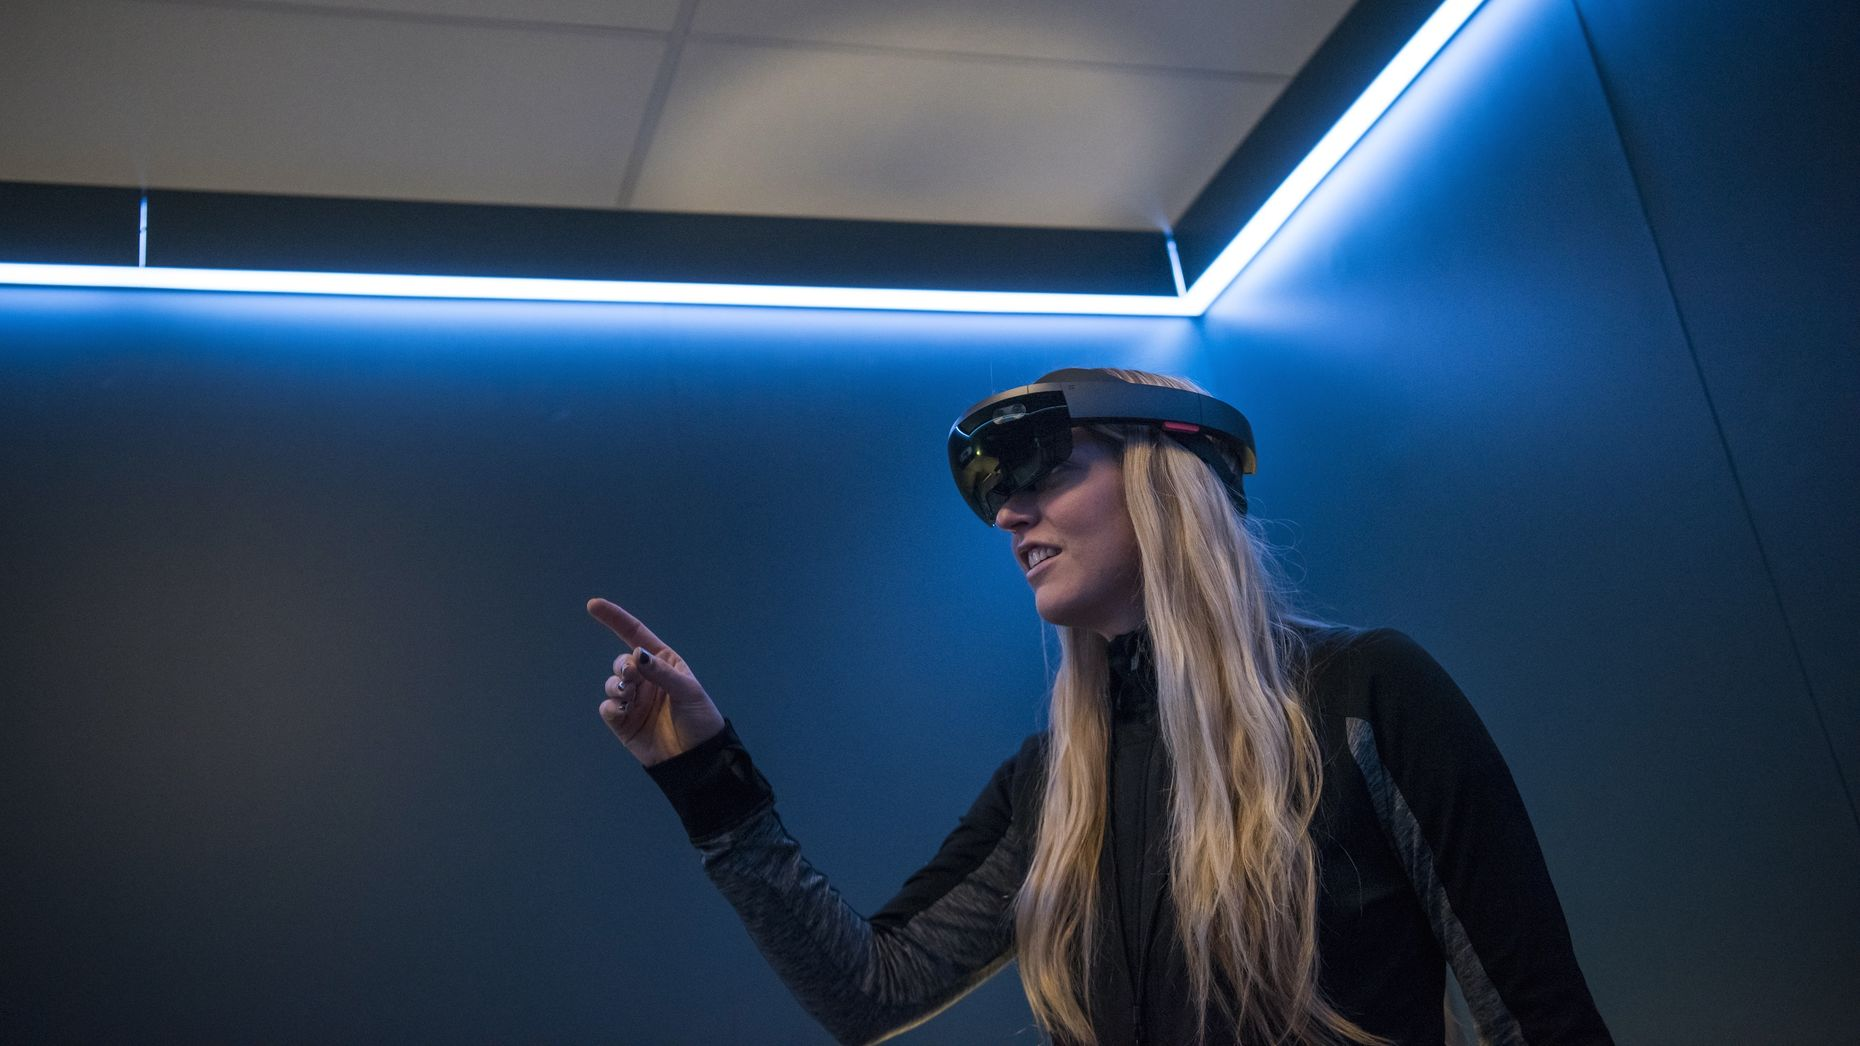 A Microsoft employee demonstrating the HoloLens at a developer conference in March. Photo by Bloomberg.